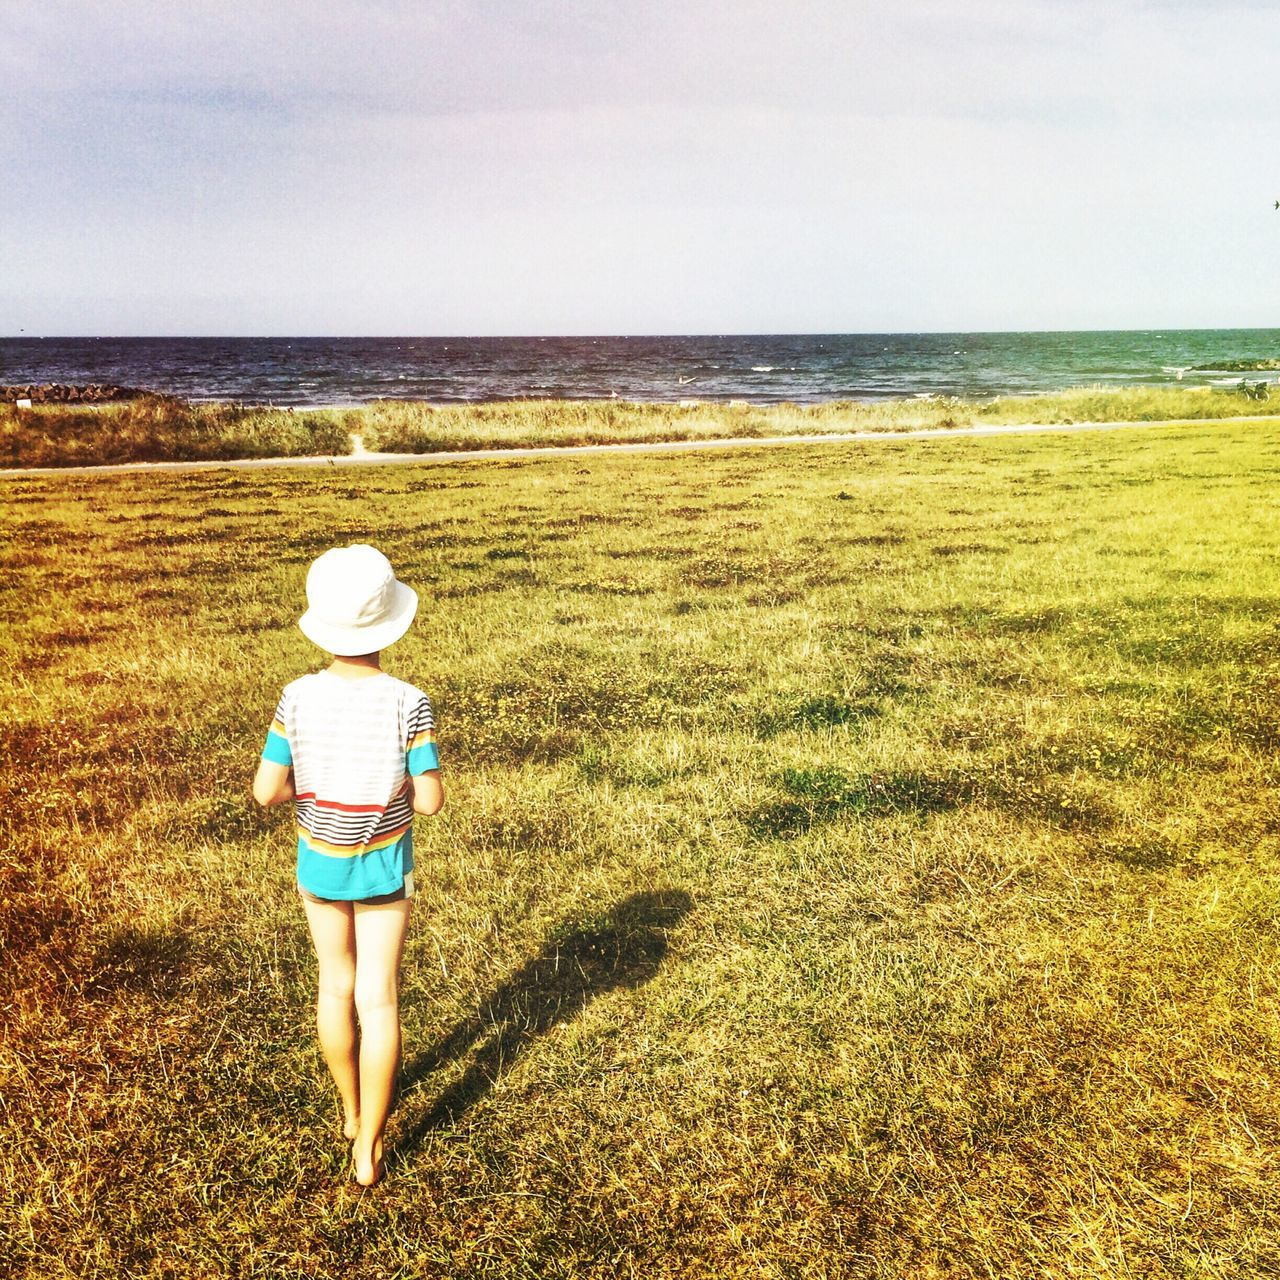 Summer View Summer Enjoying The Sun Kids Small boy is looking over meadow to the ocean